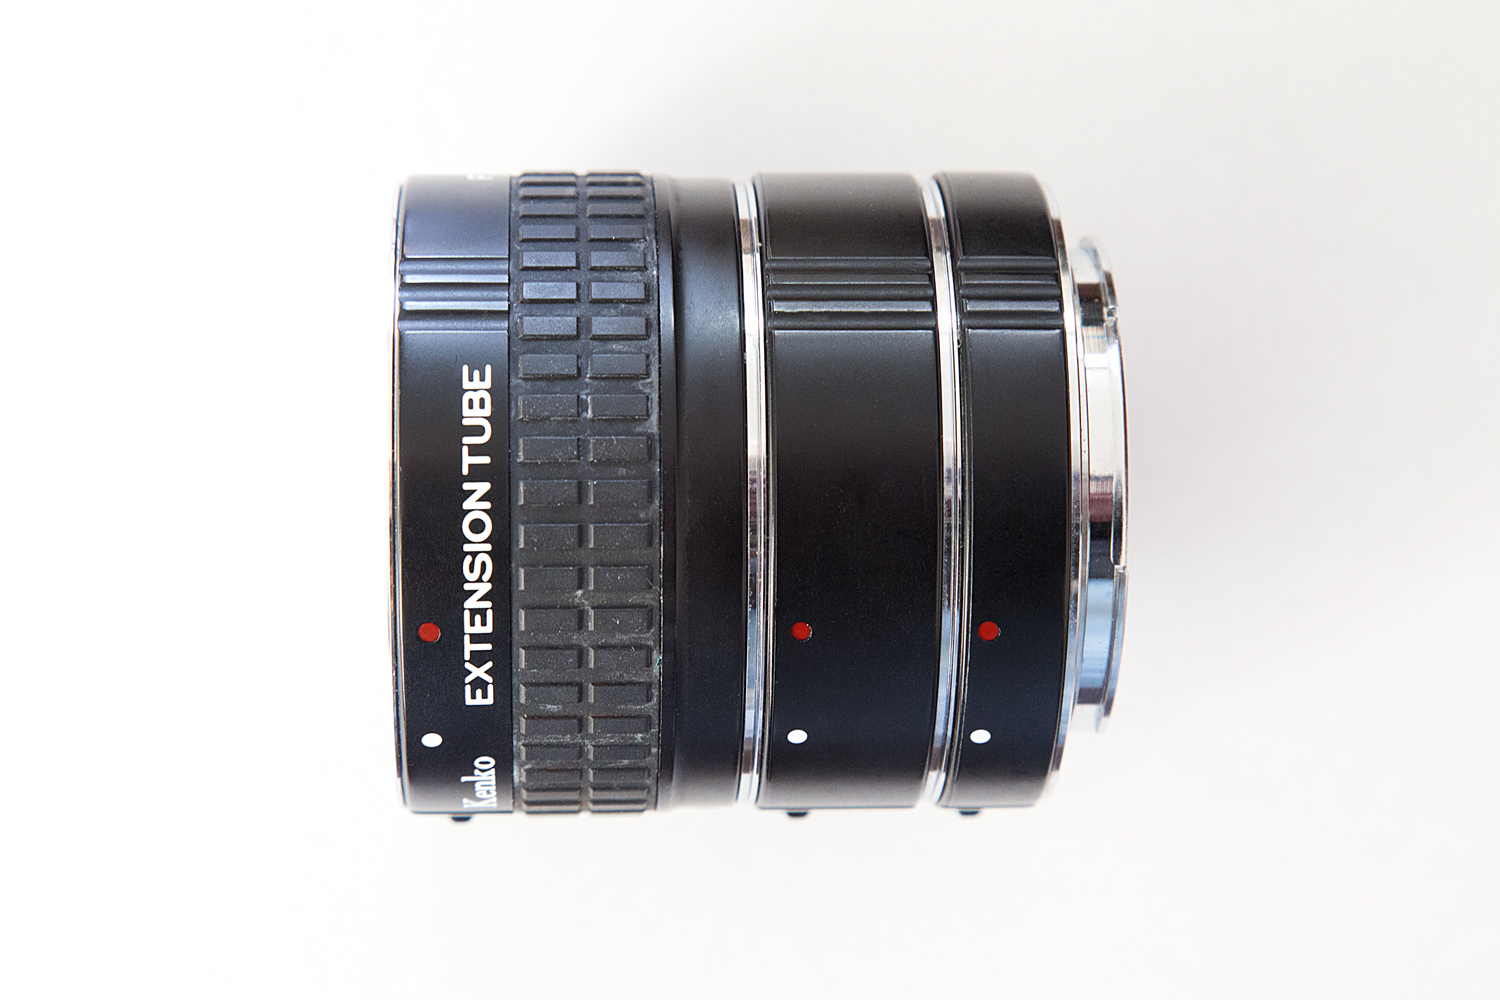 https://i1.wp.com/digital-photography-school.com/wp-content/uploads/2019/08/kenko_extension_tubes_tubes.jpg?resize=1500%2C1000&ssl=1